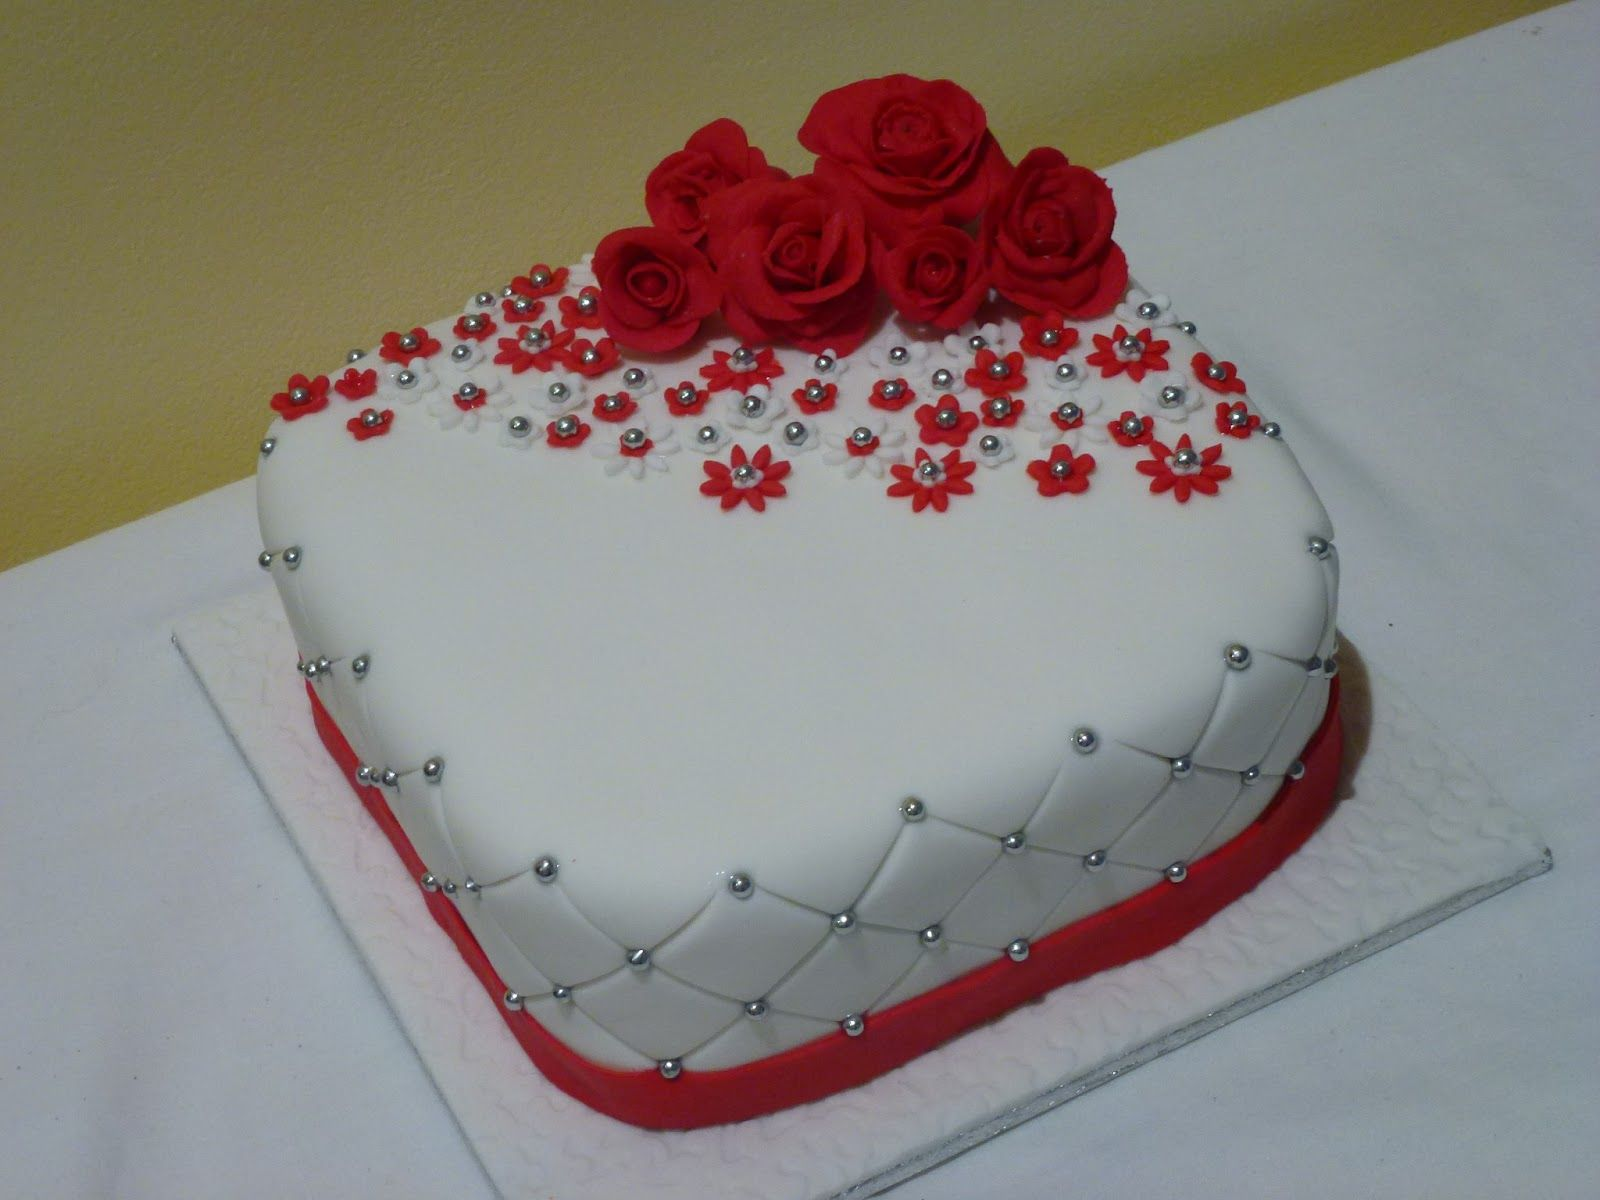 anniversary cake designs - Google Search  Wedding Anniversary Cakes ...